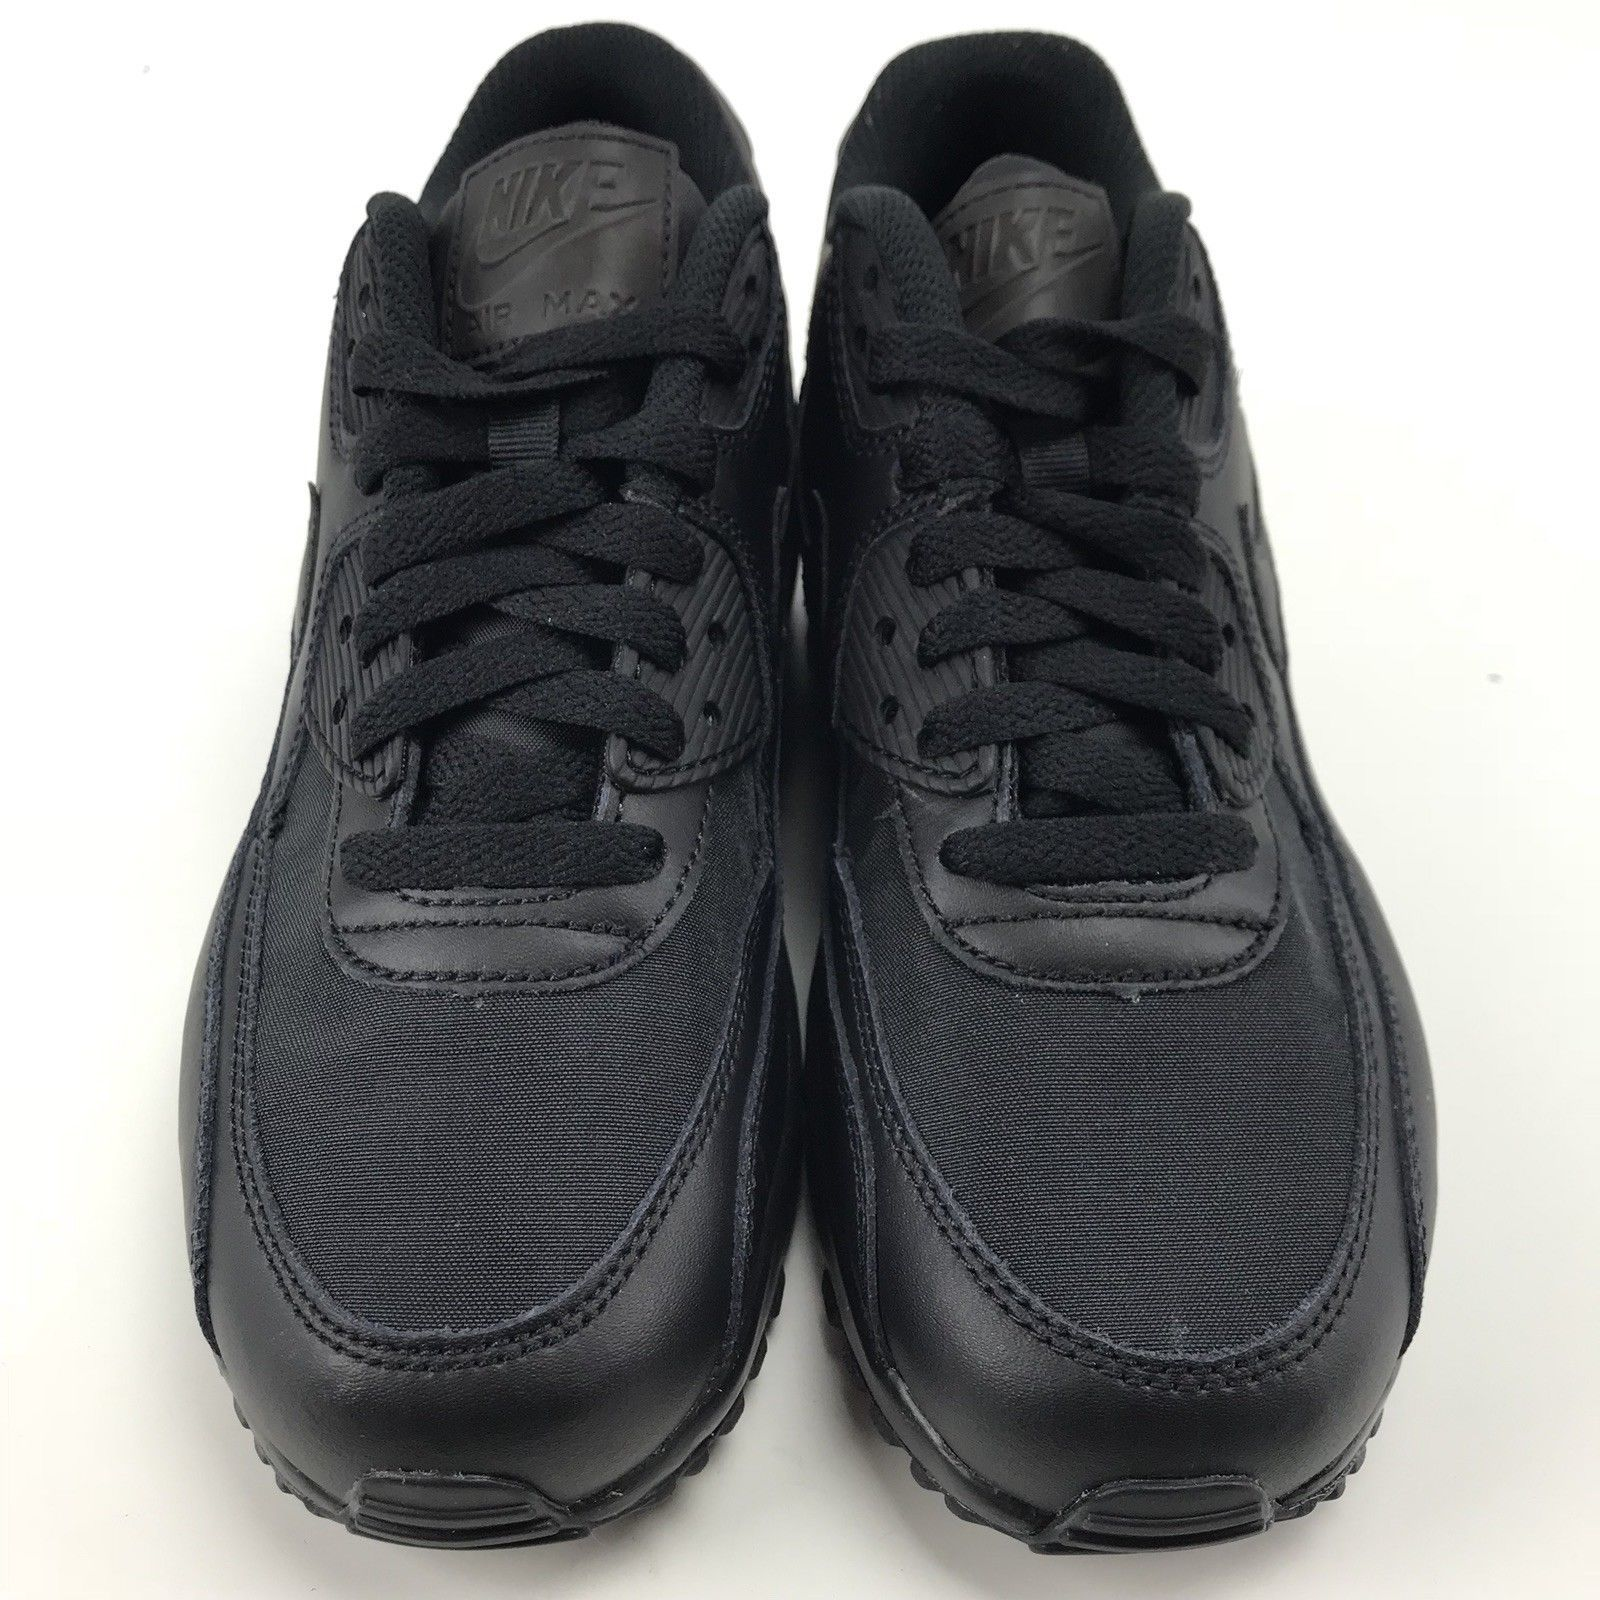 buy online c7c15 fb93d Nike Air Max 90 Premium Women s Size 7   Boys Size 5.5Y Black Gold AH9345